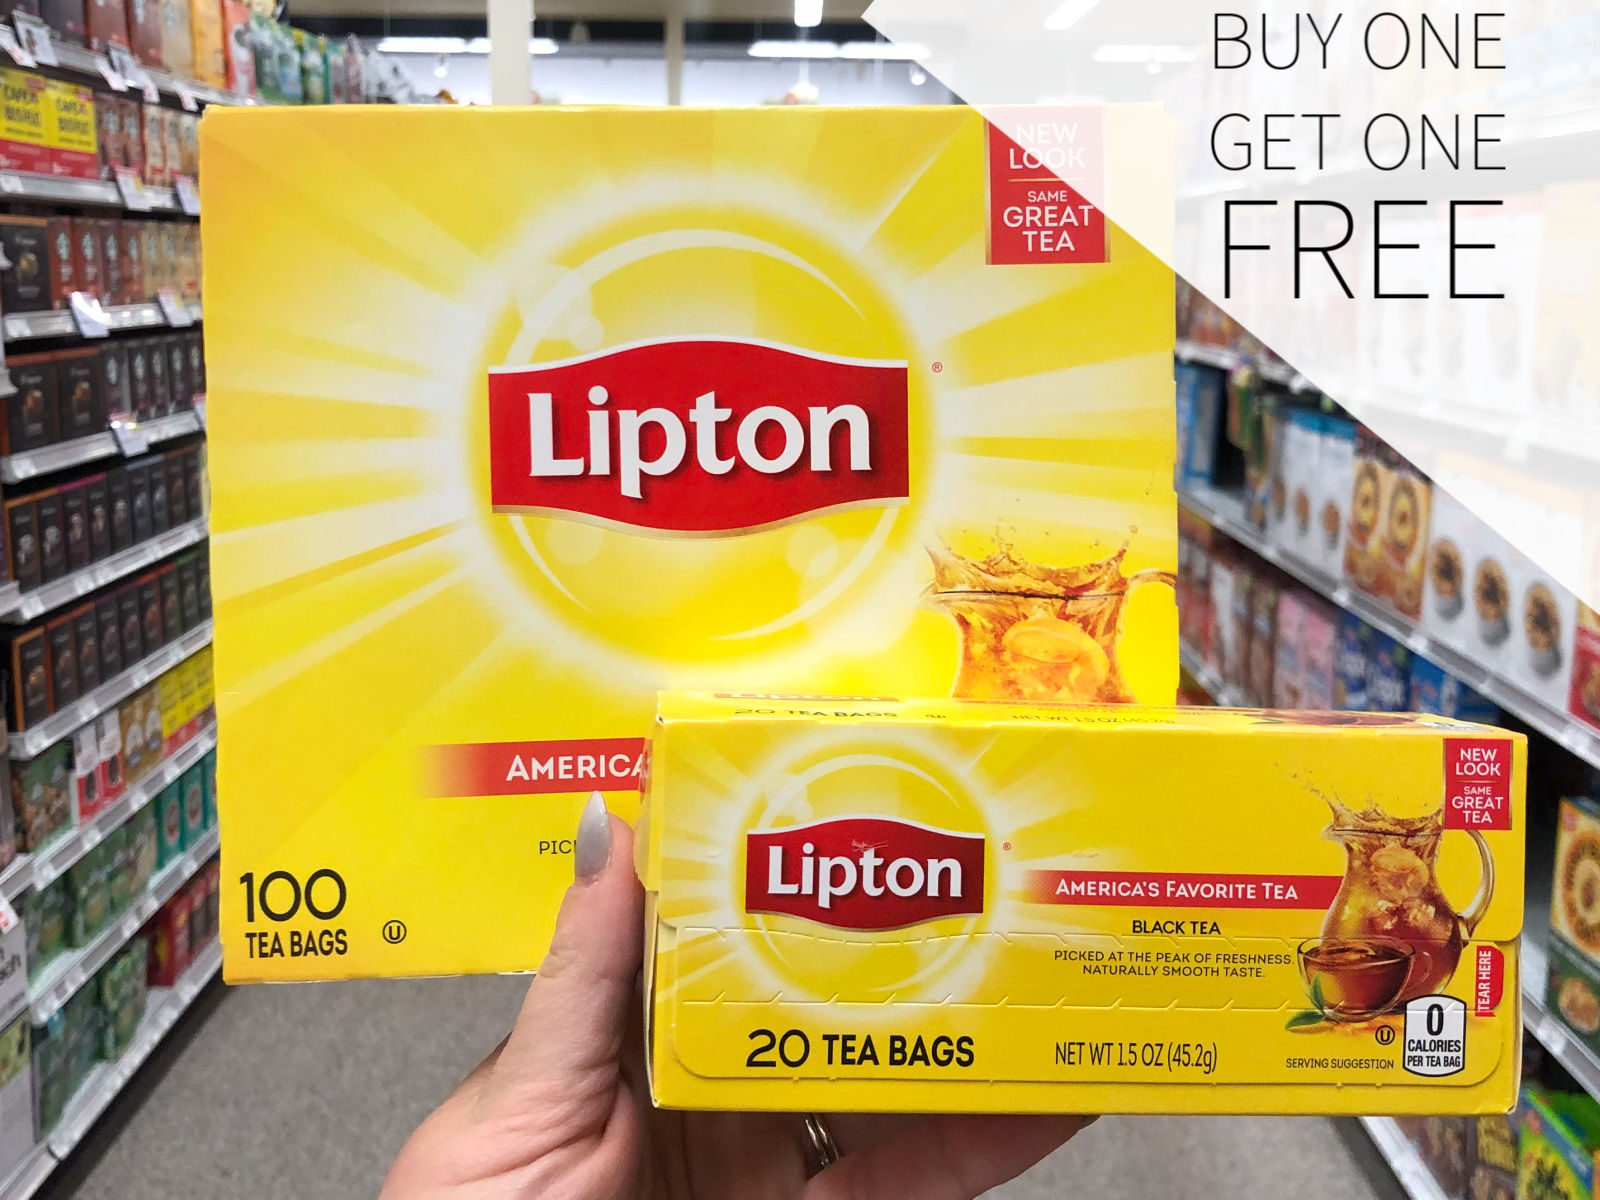 Amazing Deals On Lipton Tea At Publix - Stock Up For The Holidays! on I Heart Publix 1